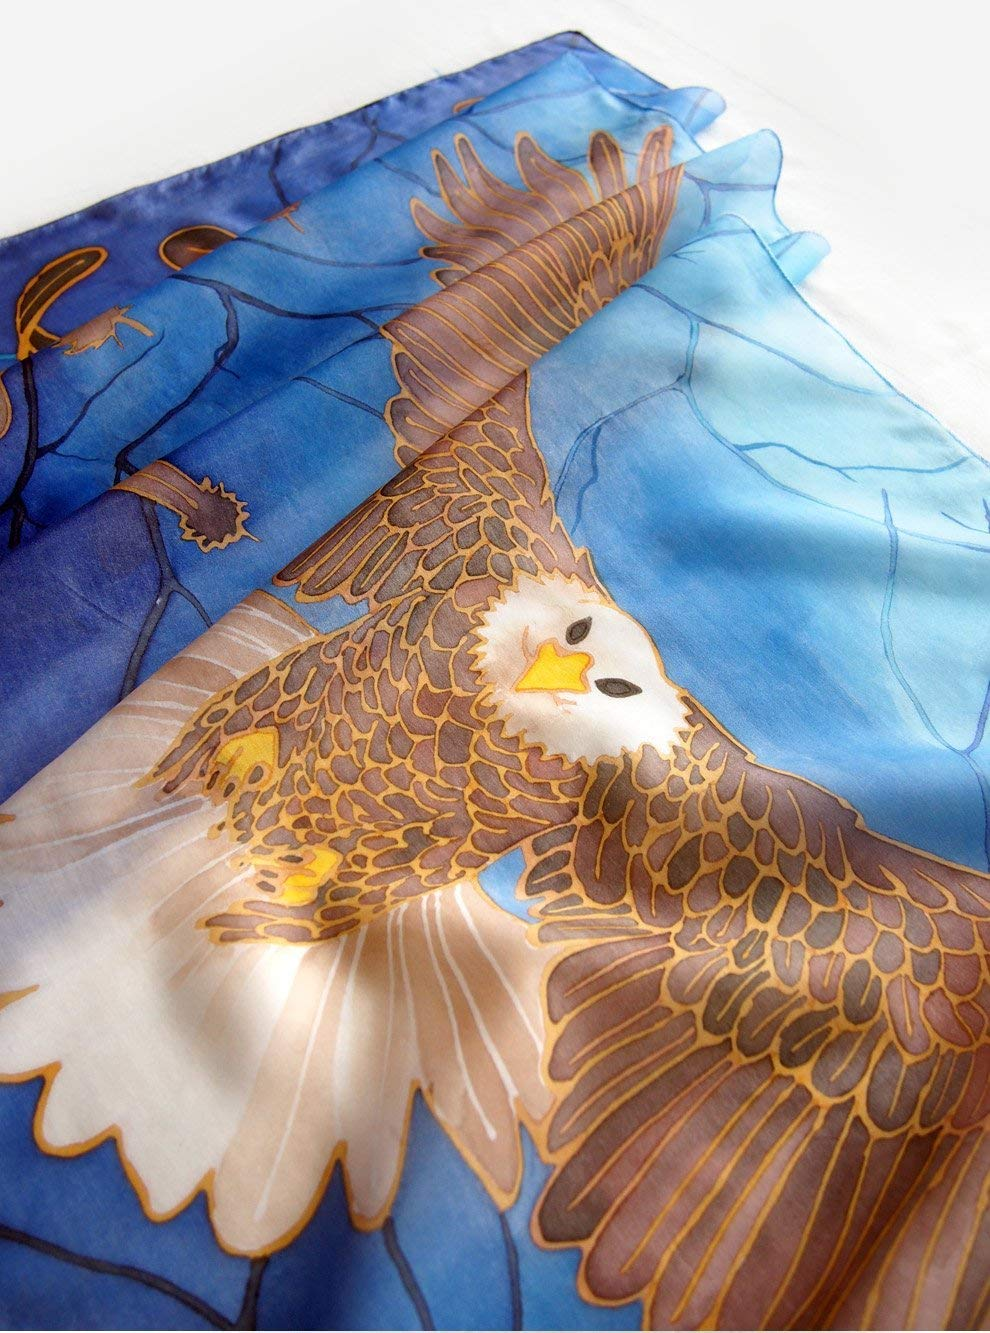 03716a38318 Amazon.com: Eagle scarf - hand painted silk scarves with bird of ...